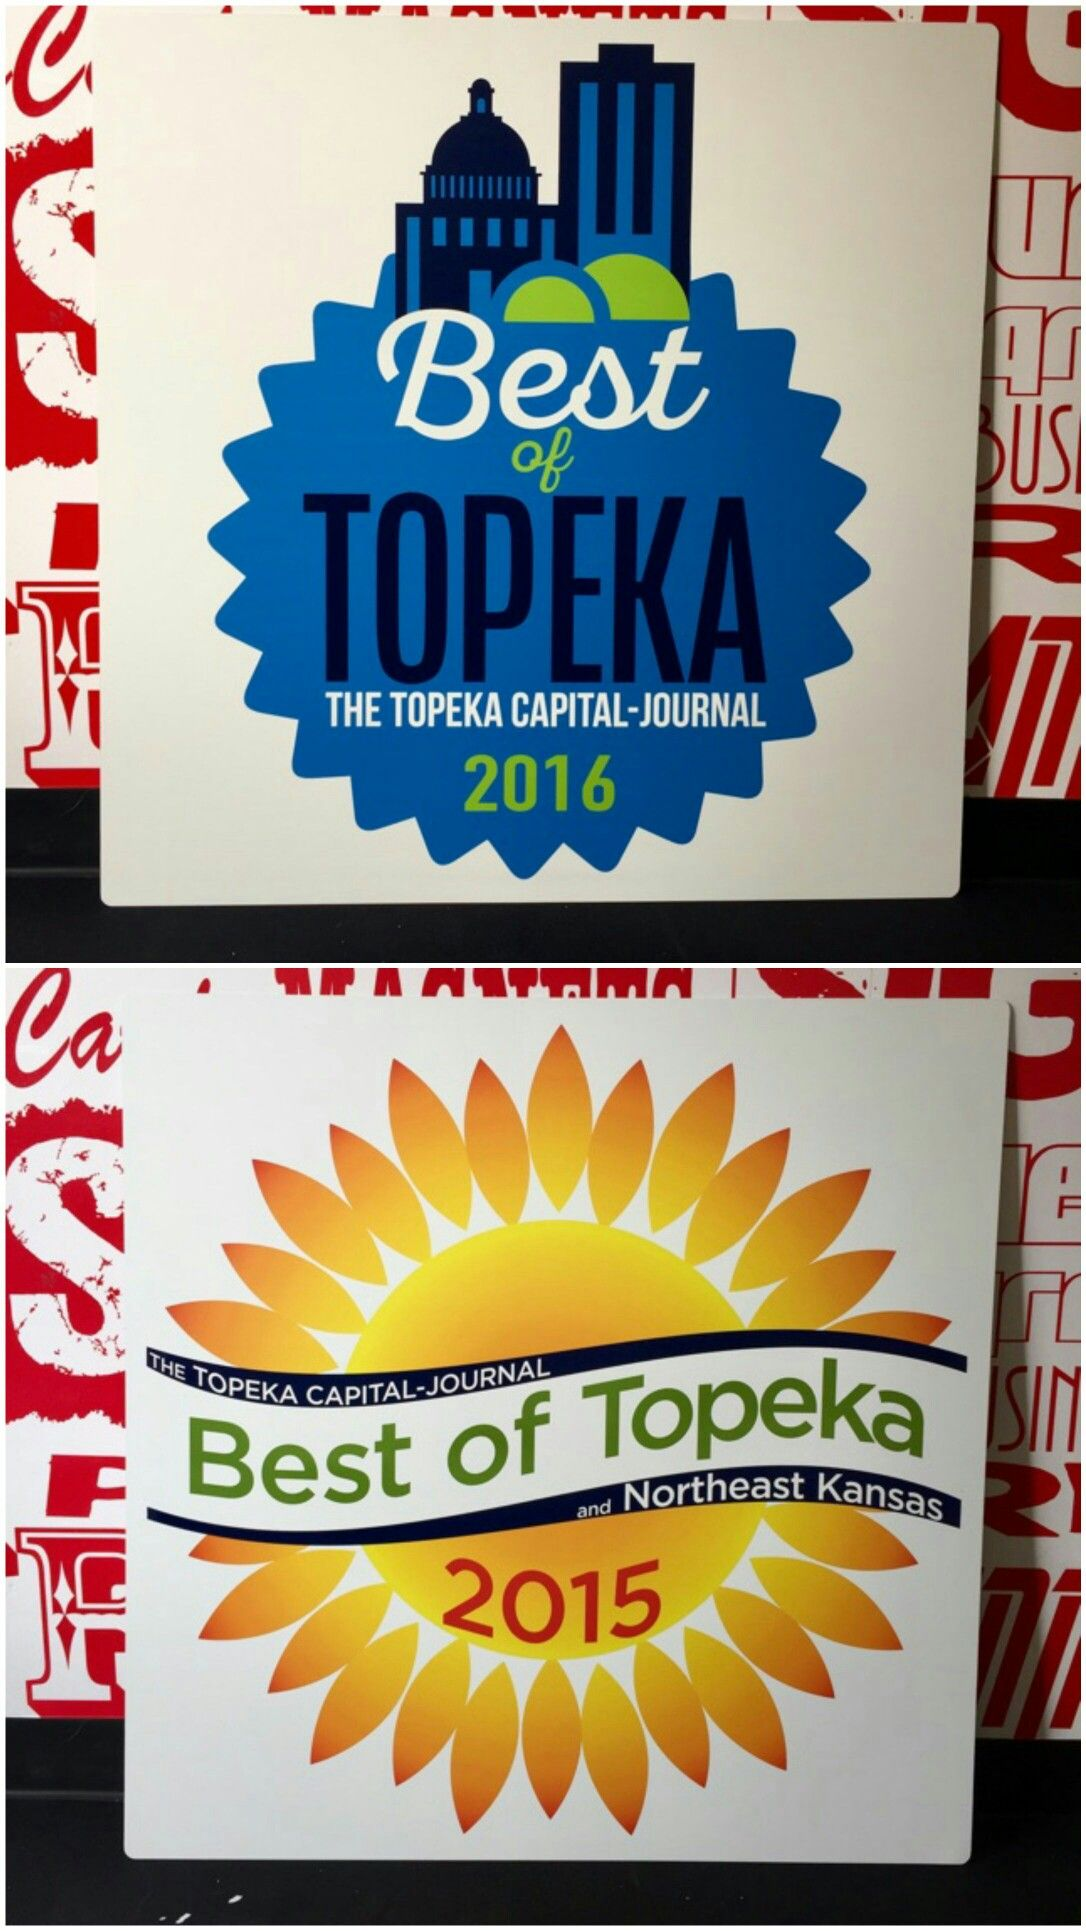 We Made This Aluminum Sign For Gardner Roofing Signs Printing Promotional Items Vehicle Graphics Contact Us For Y Sign Printing Topeka Car Graphics